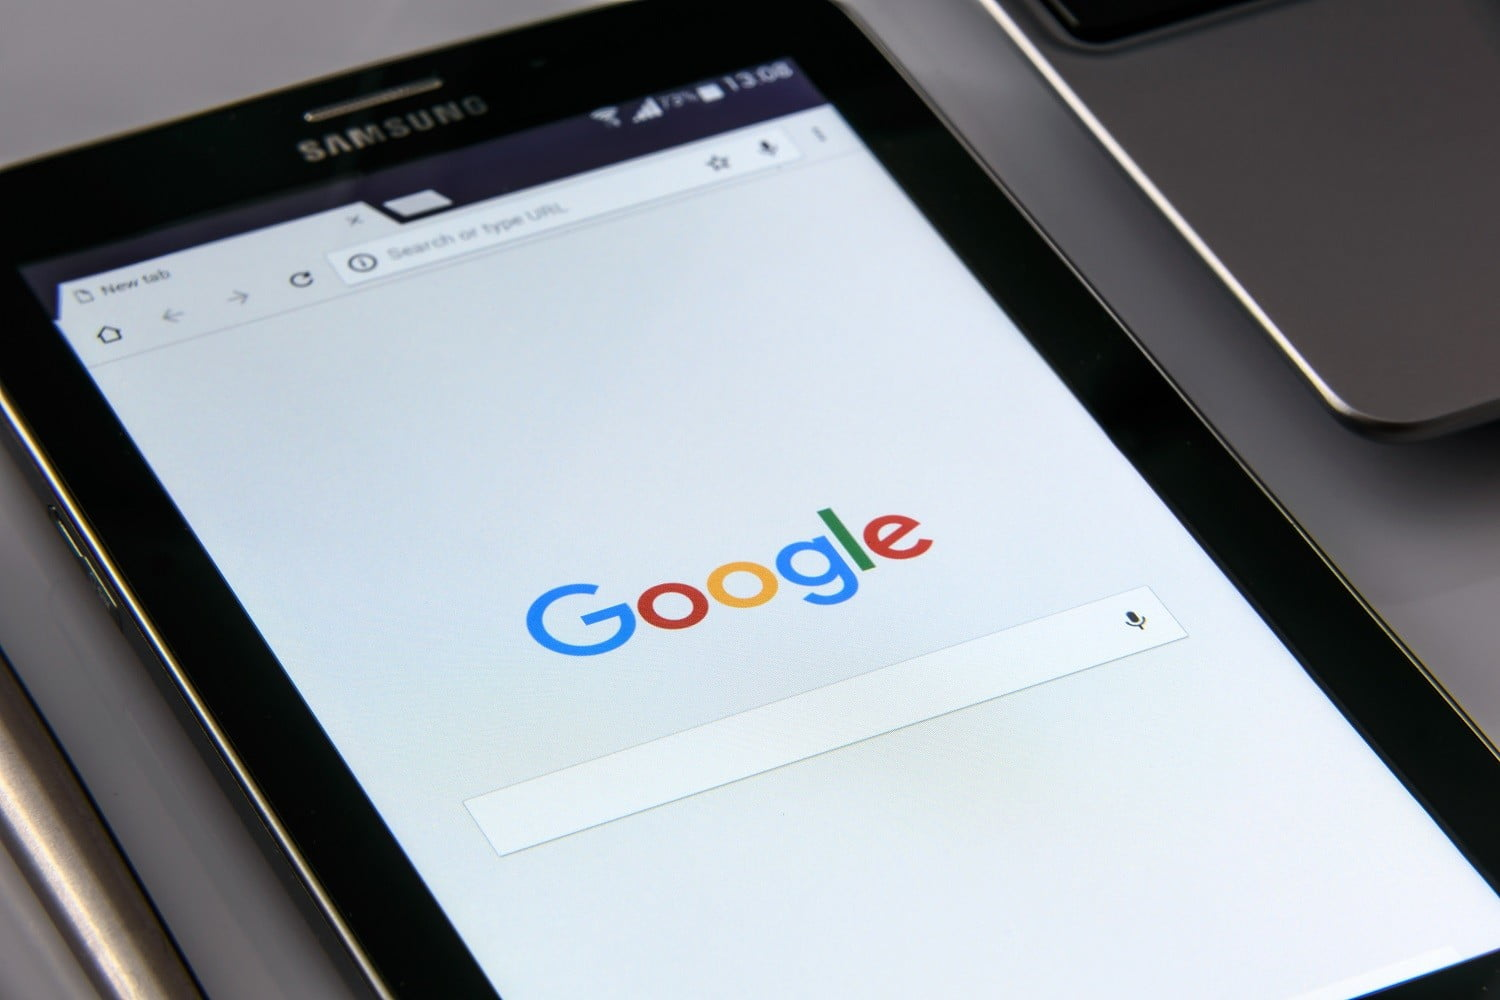 Google is secretly gathering personal health data on millions of Americans